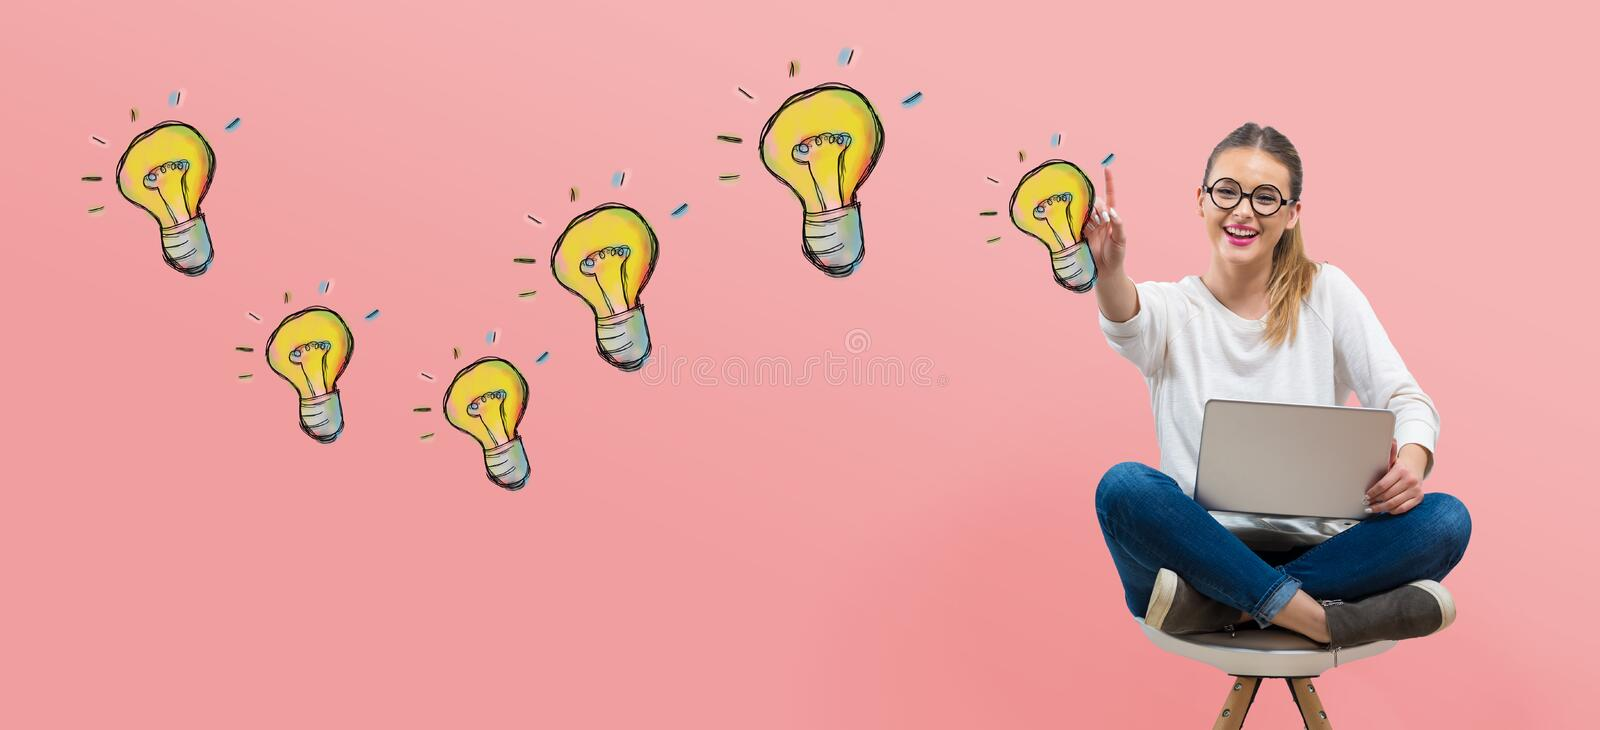 Light bulbs with young woman royalty free illustration